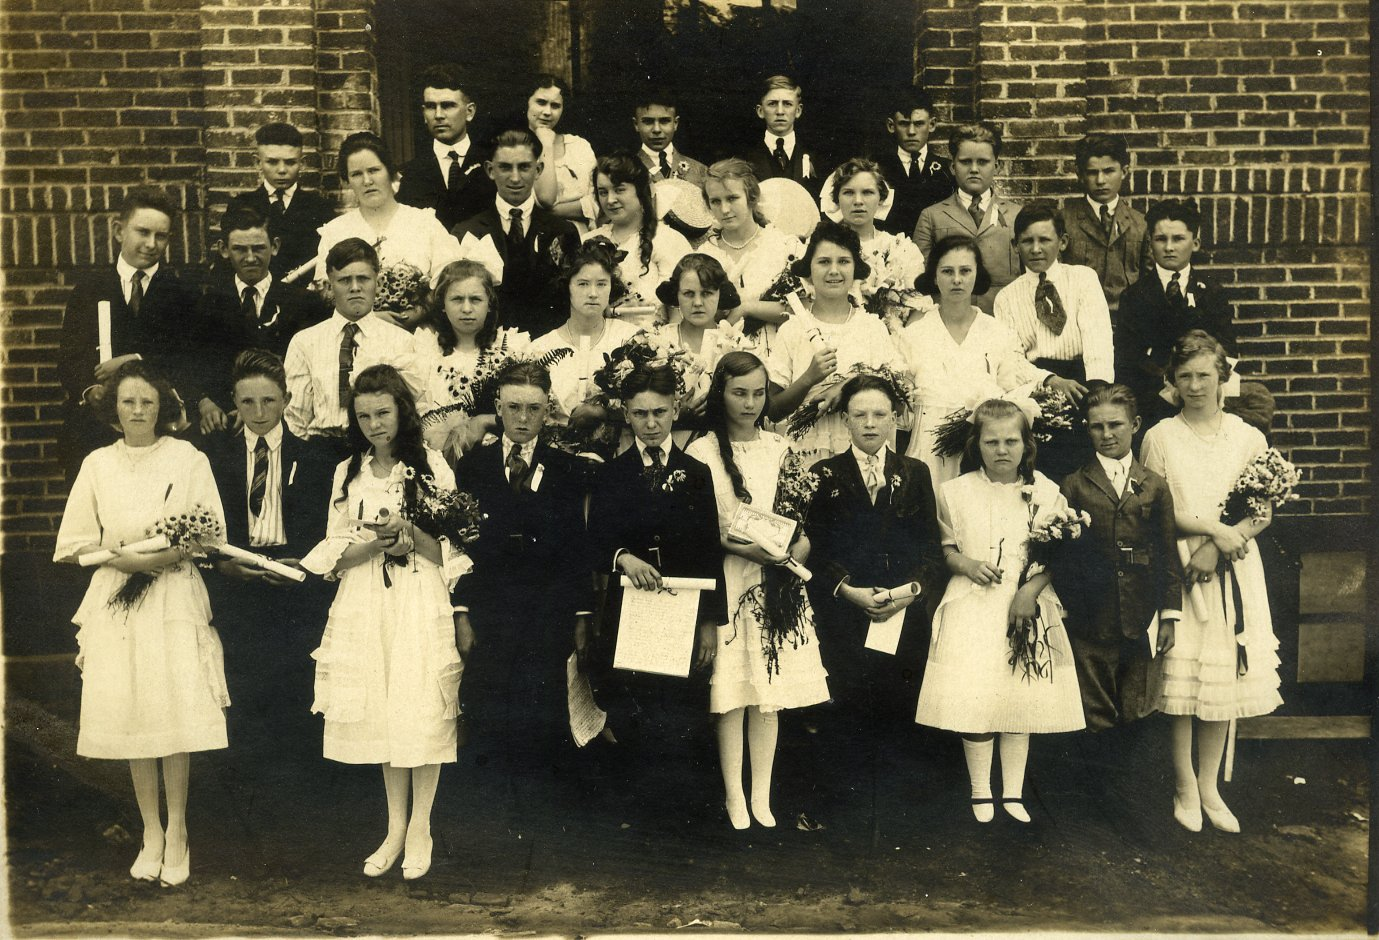 Hapeville College Street School c 1924 7th Grade.<br> Row 1: Unknown; Unknown; Gladys Jones; Frank Peebles; Asbury Bryant; Merle Perdue; Wayne Smith; Marie Meertier; Lawrence Campbell; Esther Lassiter<br> Row c2: Claud Hines; Elmer Dailey; Unknown; Eleanor Pace; Ethel Harrison; Unknown; Helen Holland; Unknown; William Akin<br> Row 3: Unknown; Unknown; Dan Wells; Esther Volan; Katheryn Dunn; Aeive Golbert; Neill Leach; Unknown<br> Row 4: Jere Wells, teacher; Unknown; E G Webb; Unknown Unknown